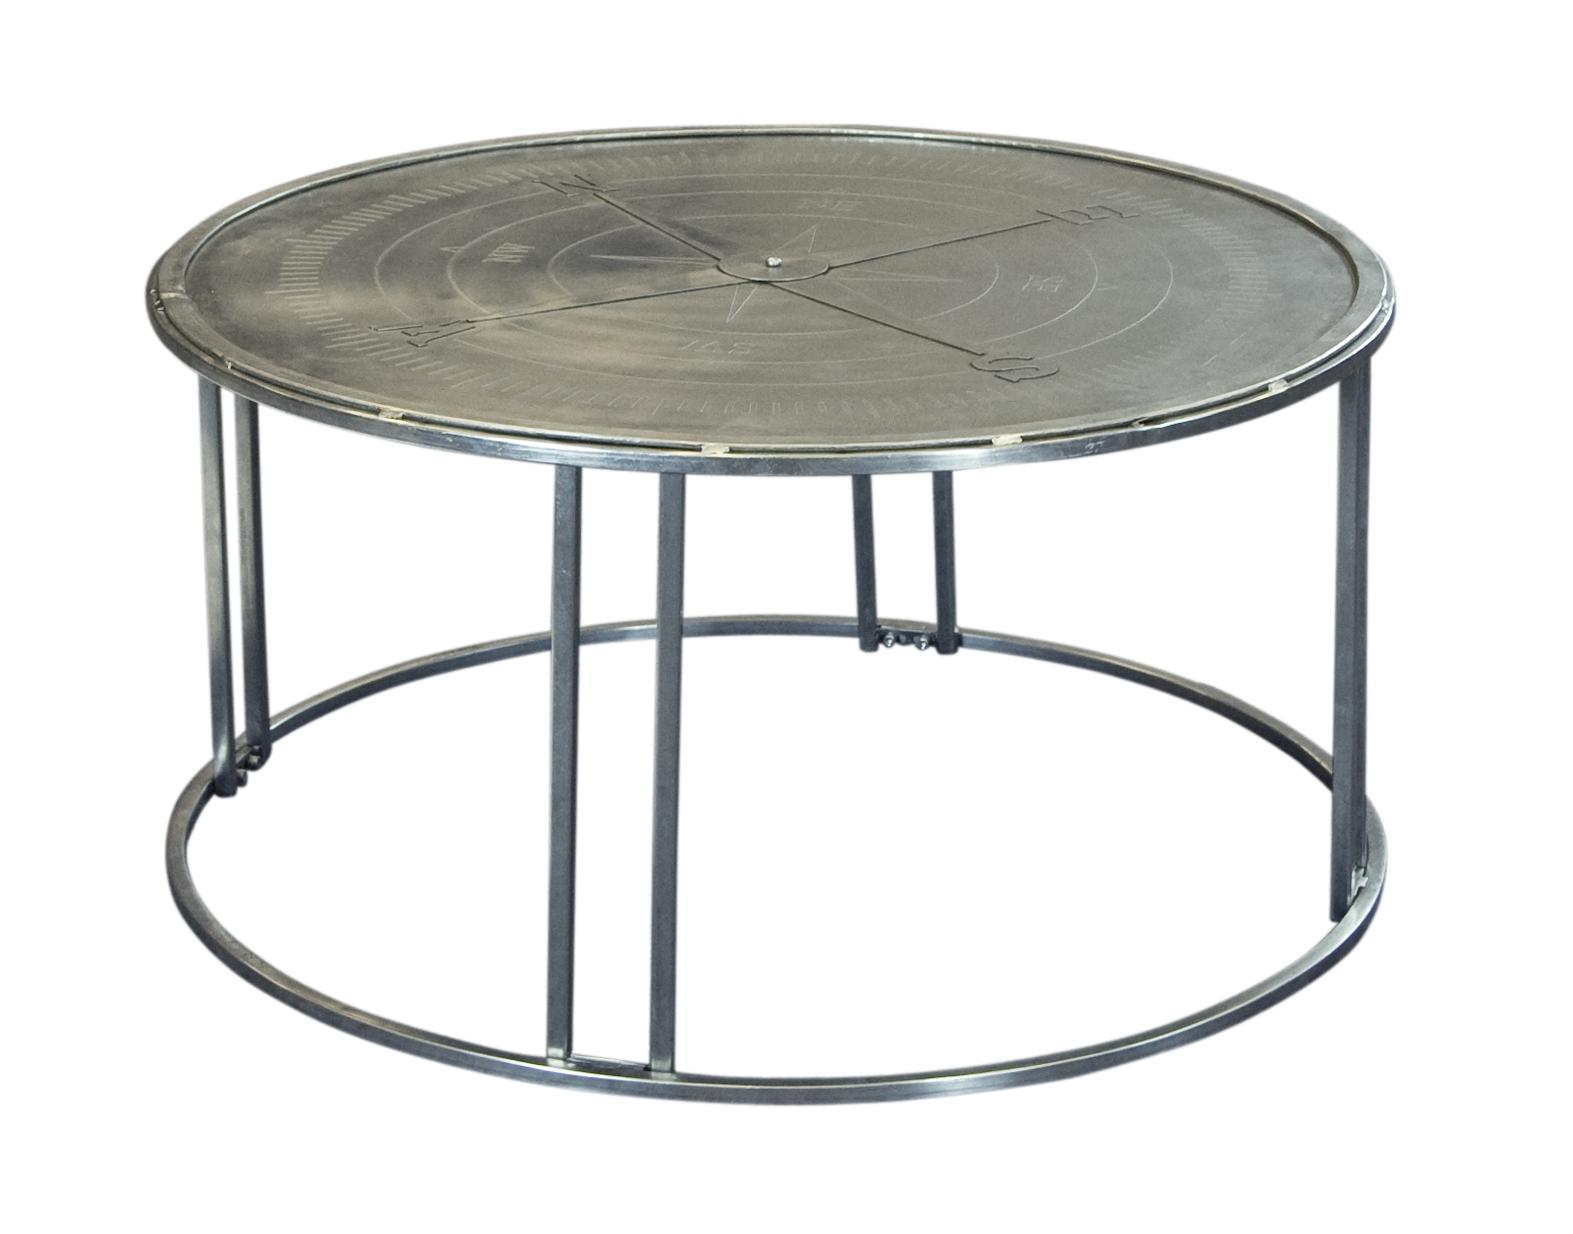 Coast to Coast Imports Jadu Accents Compass Rose Cocktail Table - Item Number: 59447